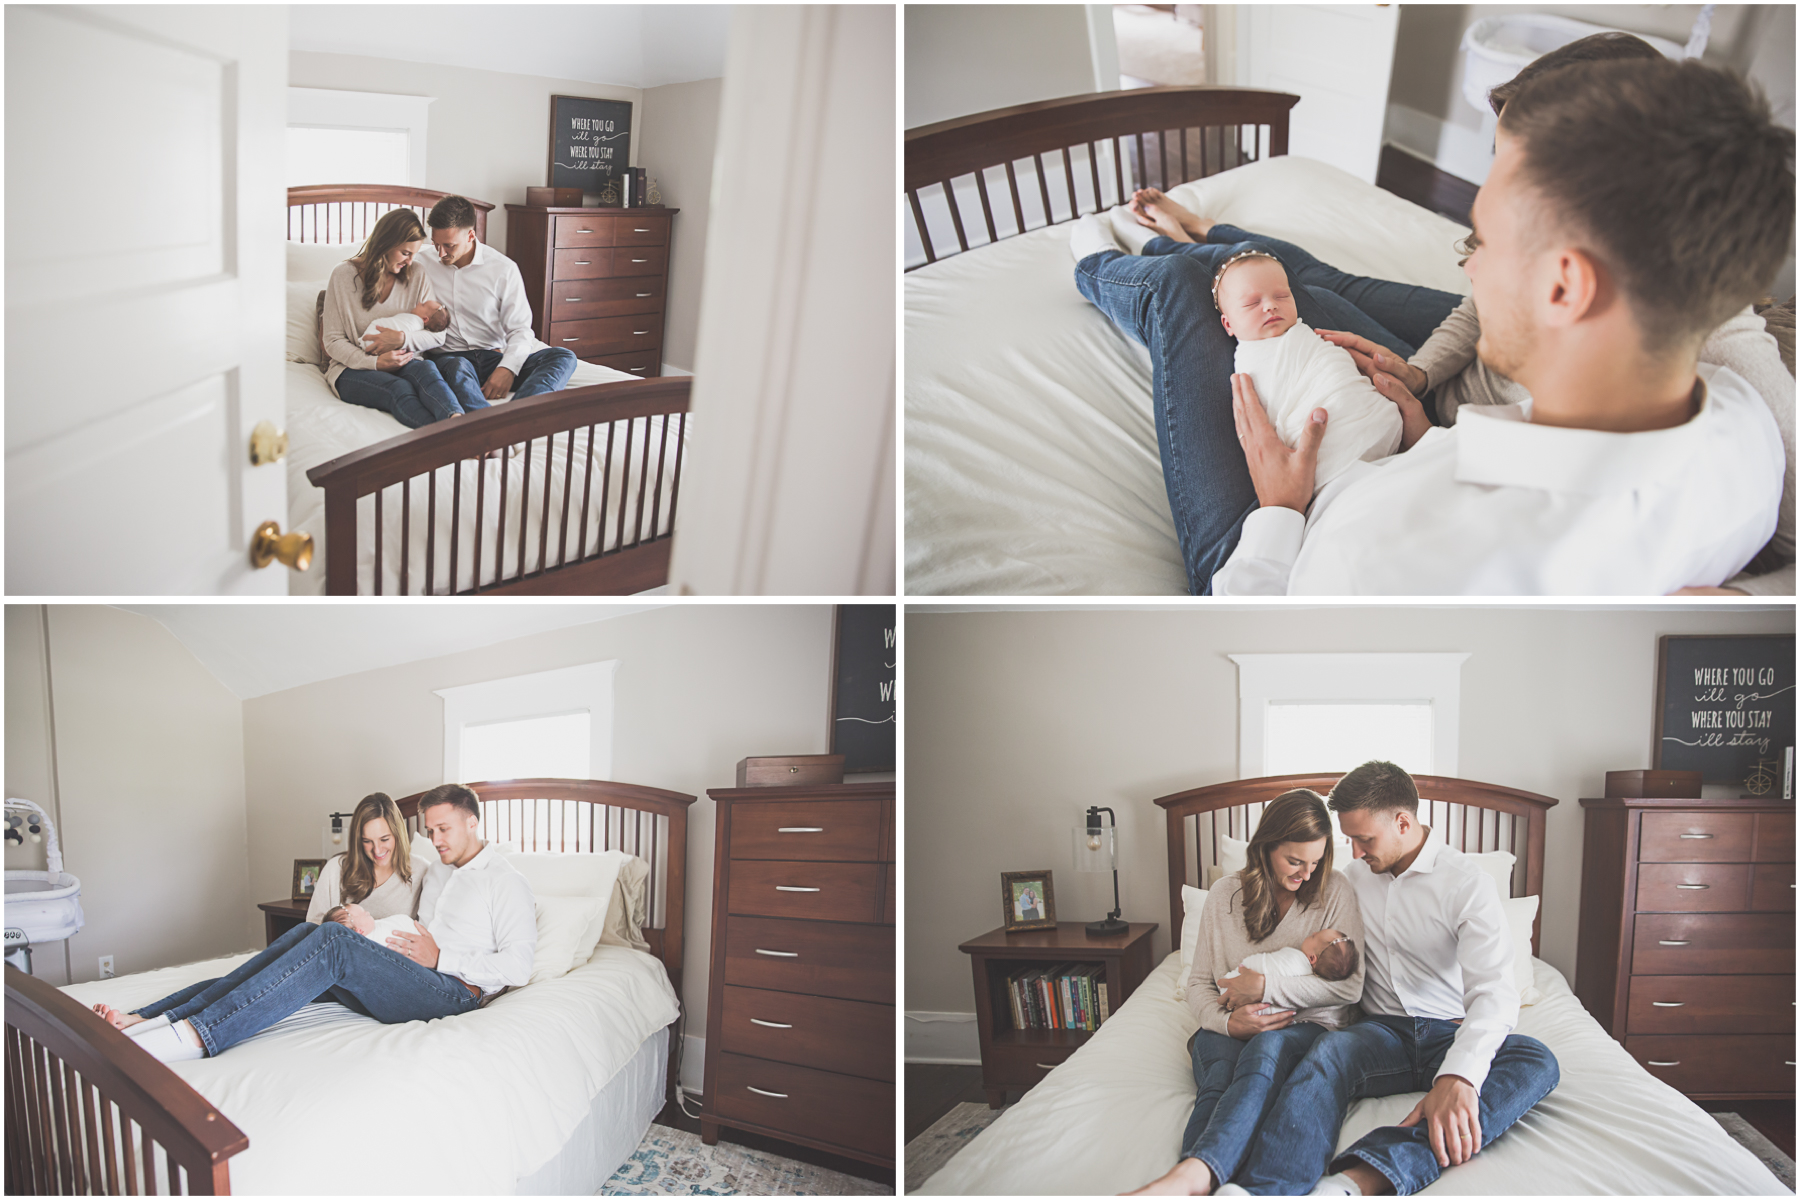 Cara Peterson Photography Rockford IL Newborn Maternity Family Photographer Northern IL Lifestyle in home baby .jpg